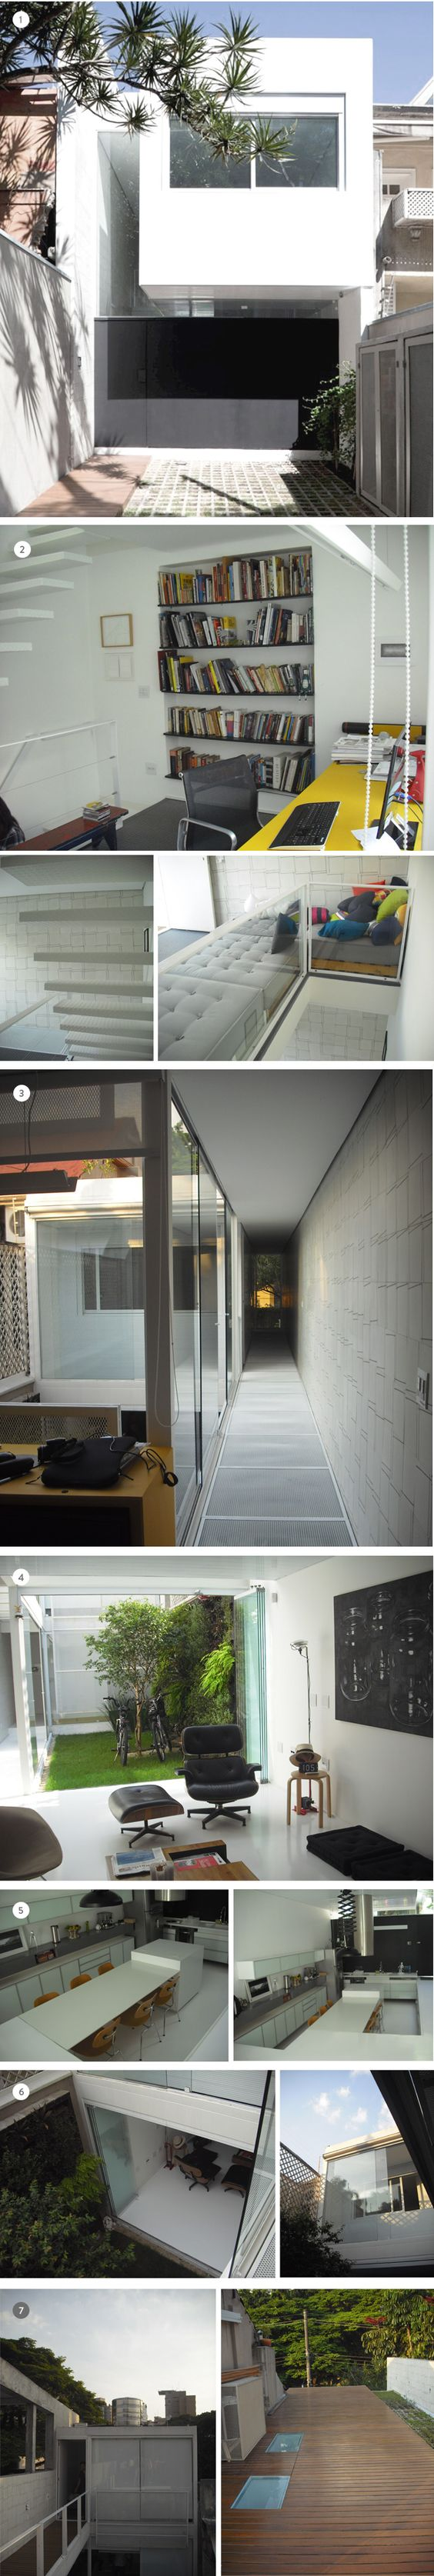 » Projeto residencial | Revista Westwing